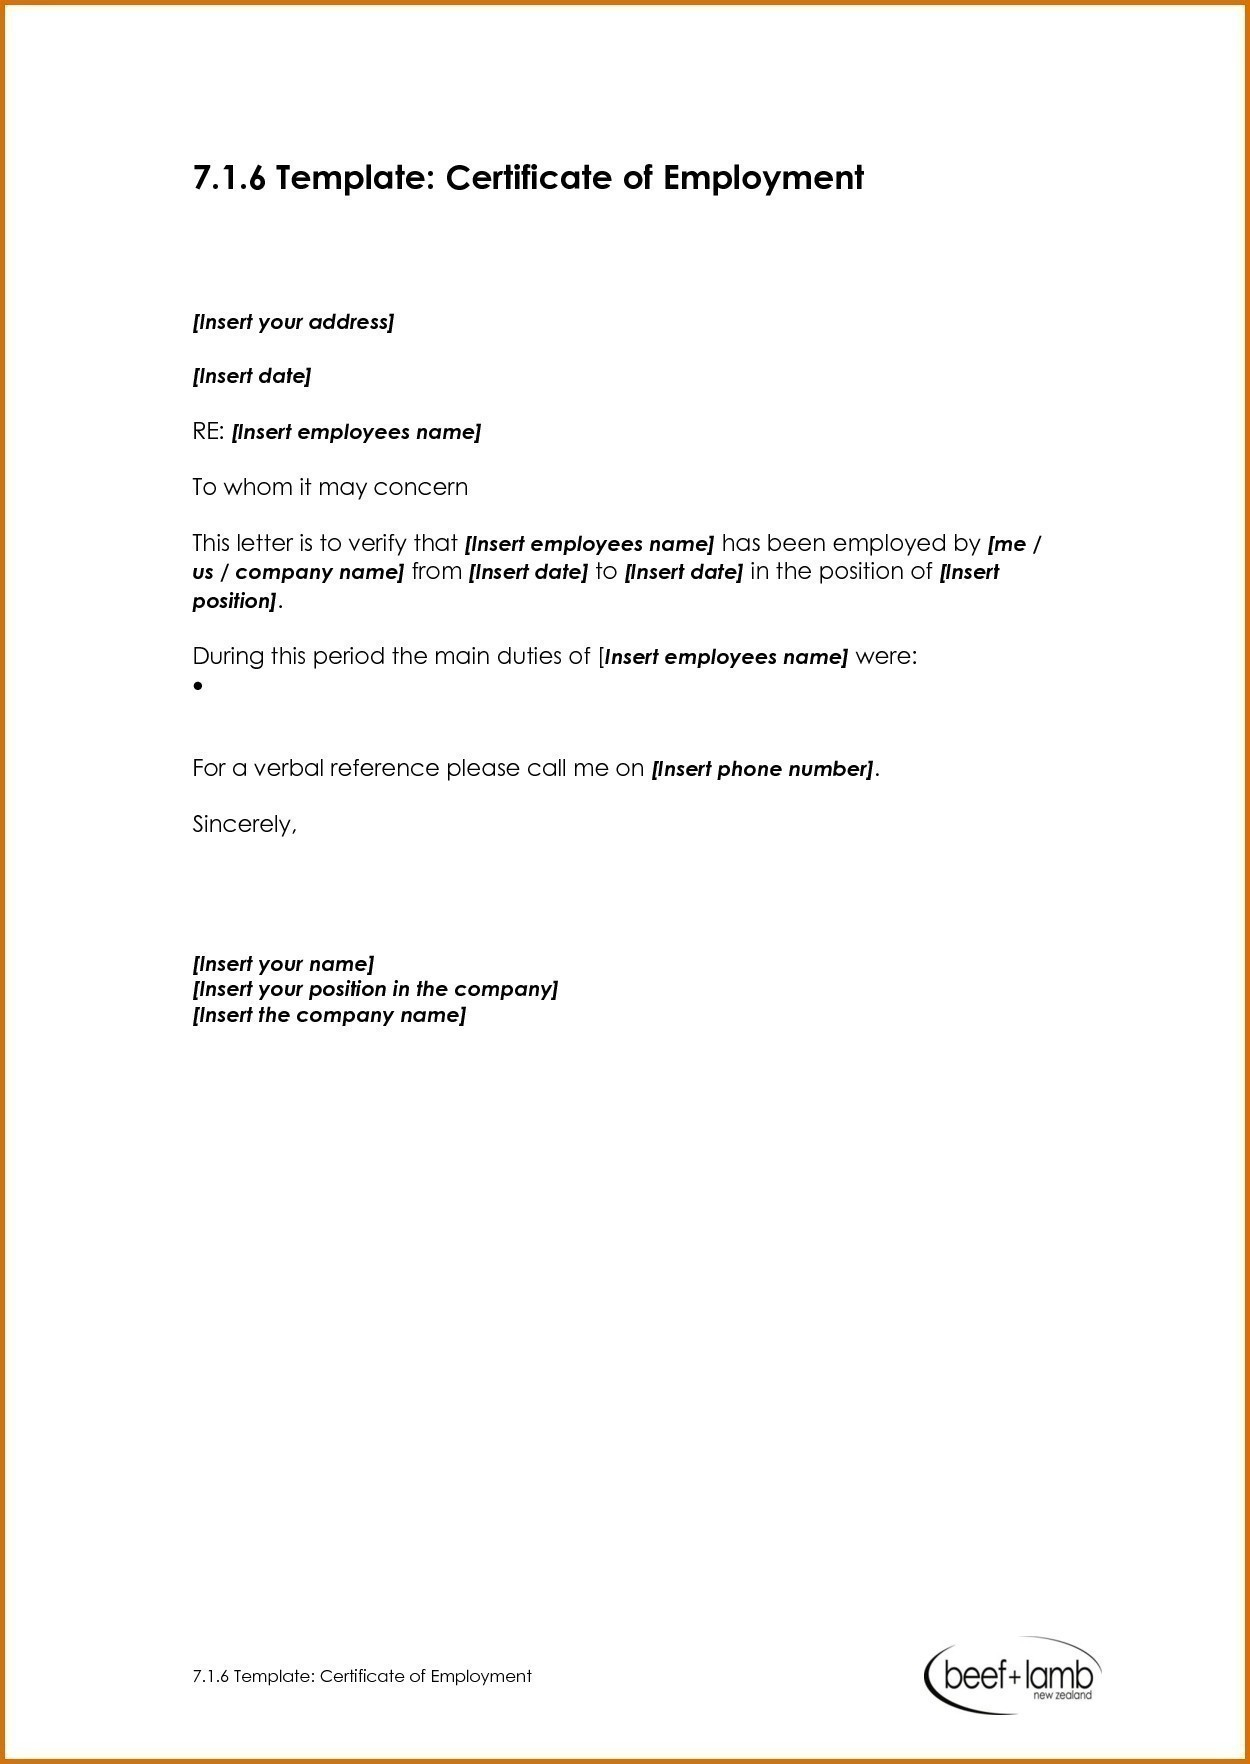 Template Ideas Request Letter Format For Certificate Ofent New With Regard To Share Certificate Template Australia